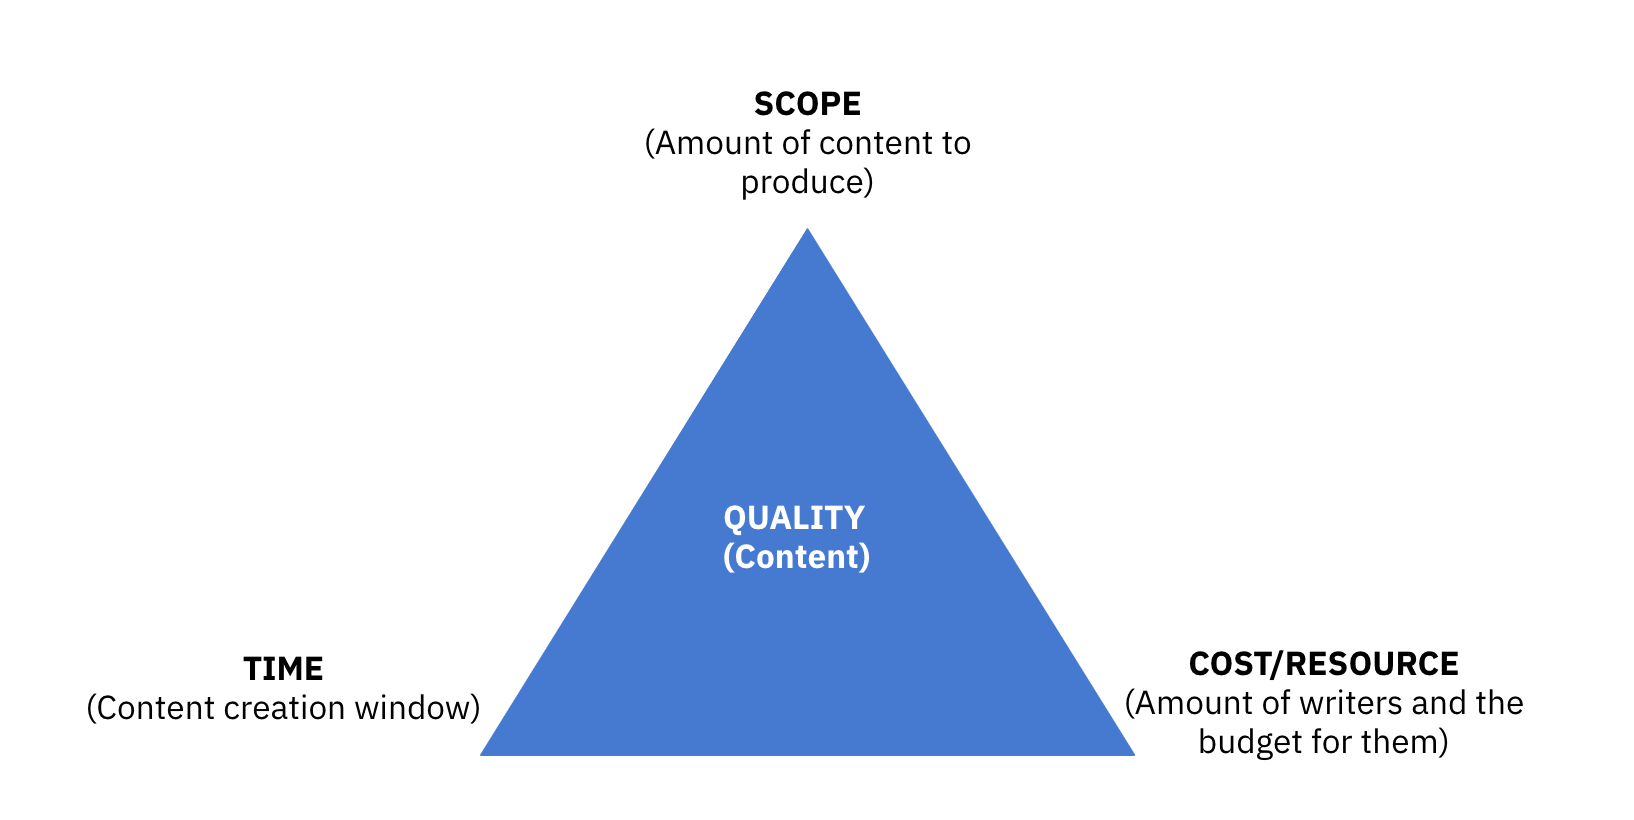 Content cost estimation triangle